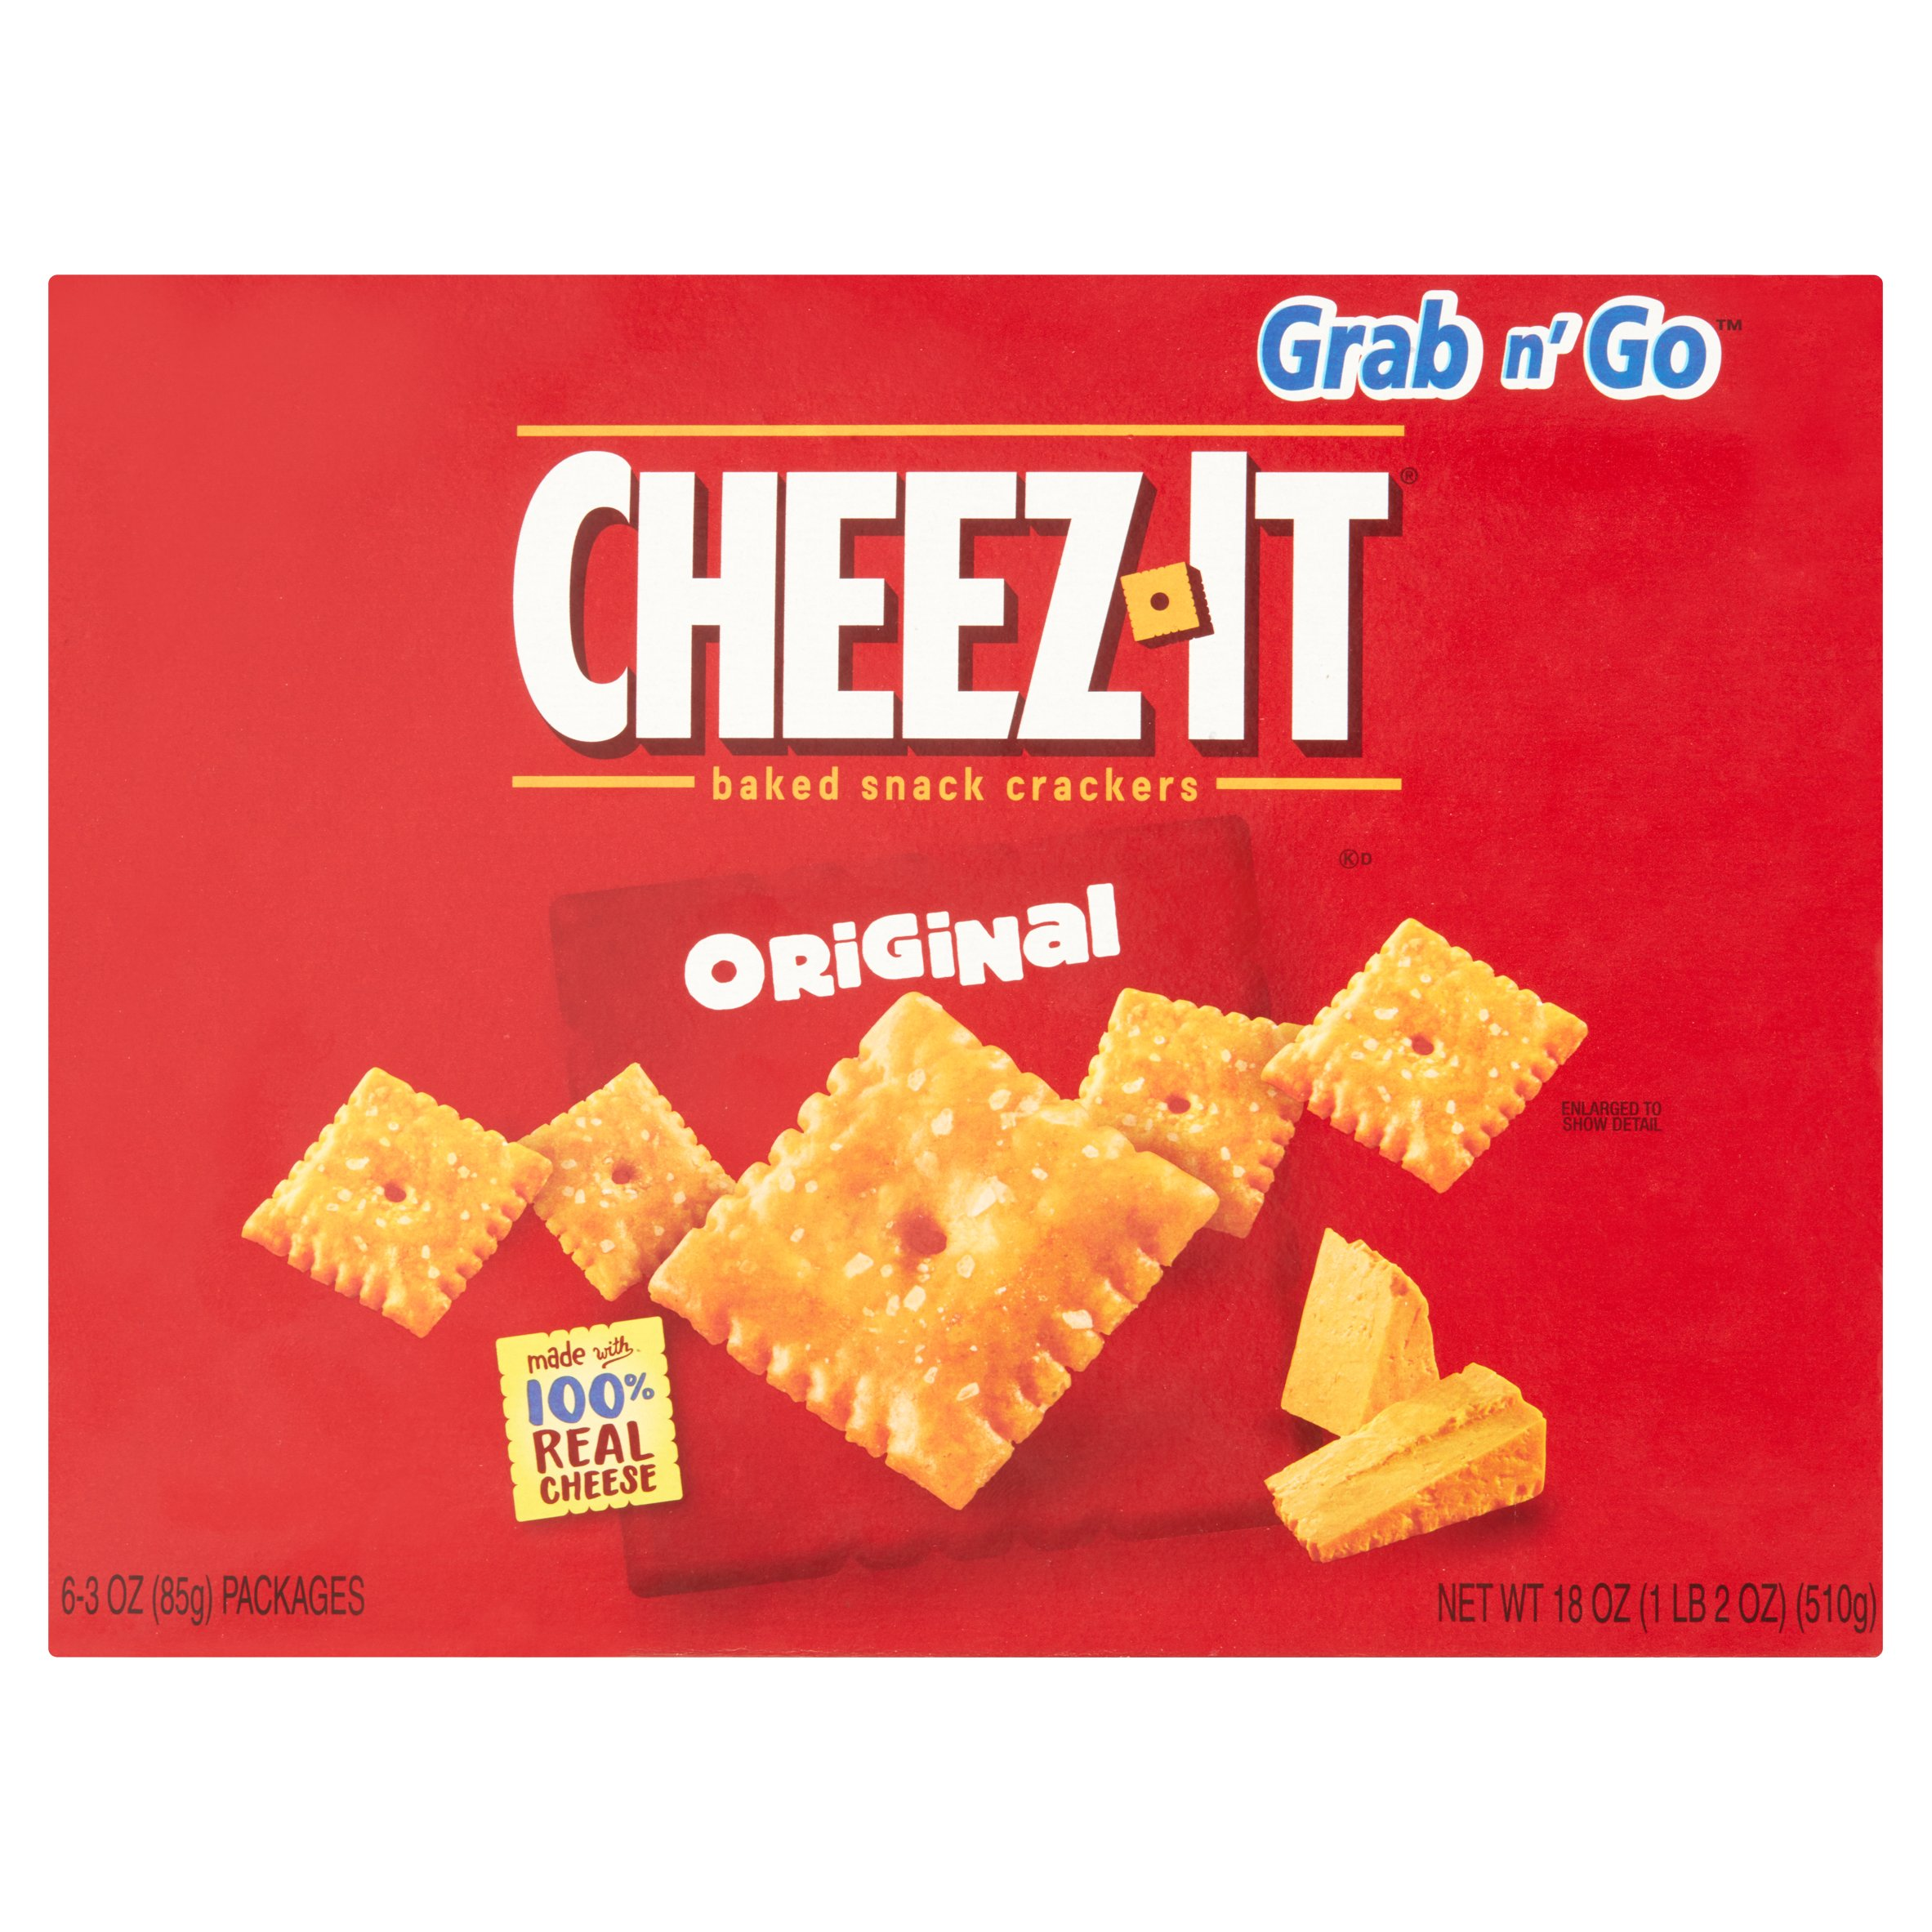 Cheez-It Grab n' Go Original Baked Snack Crackers, 3 oz, 6 pack